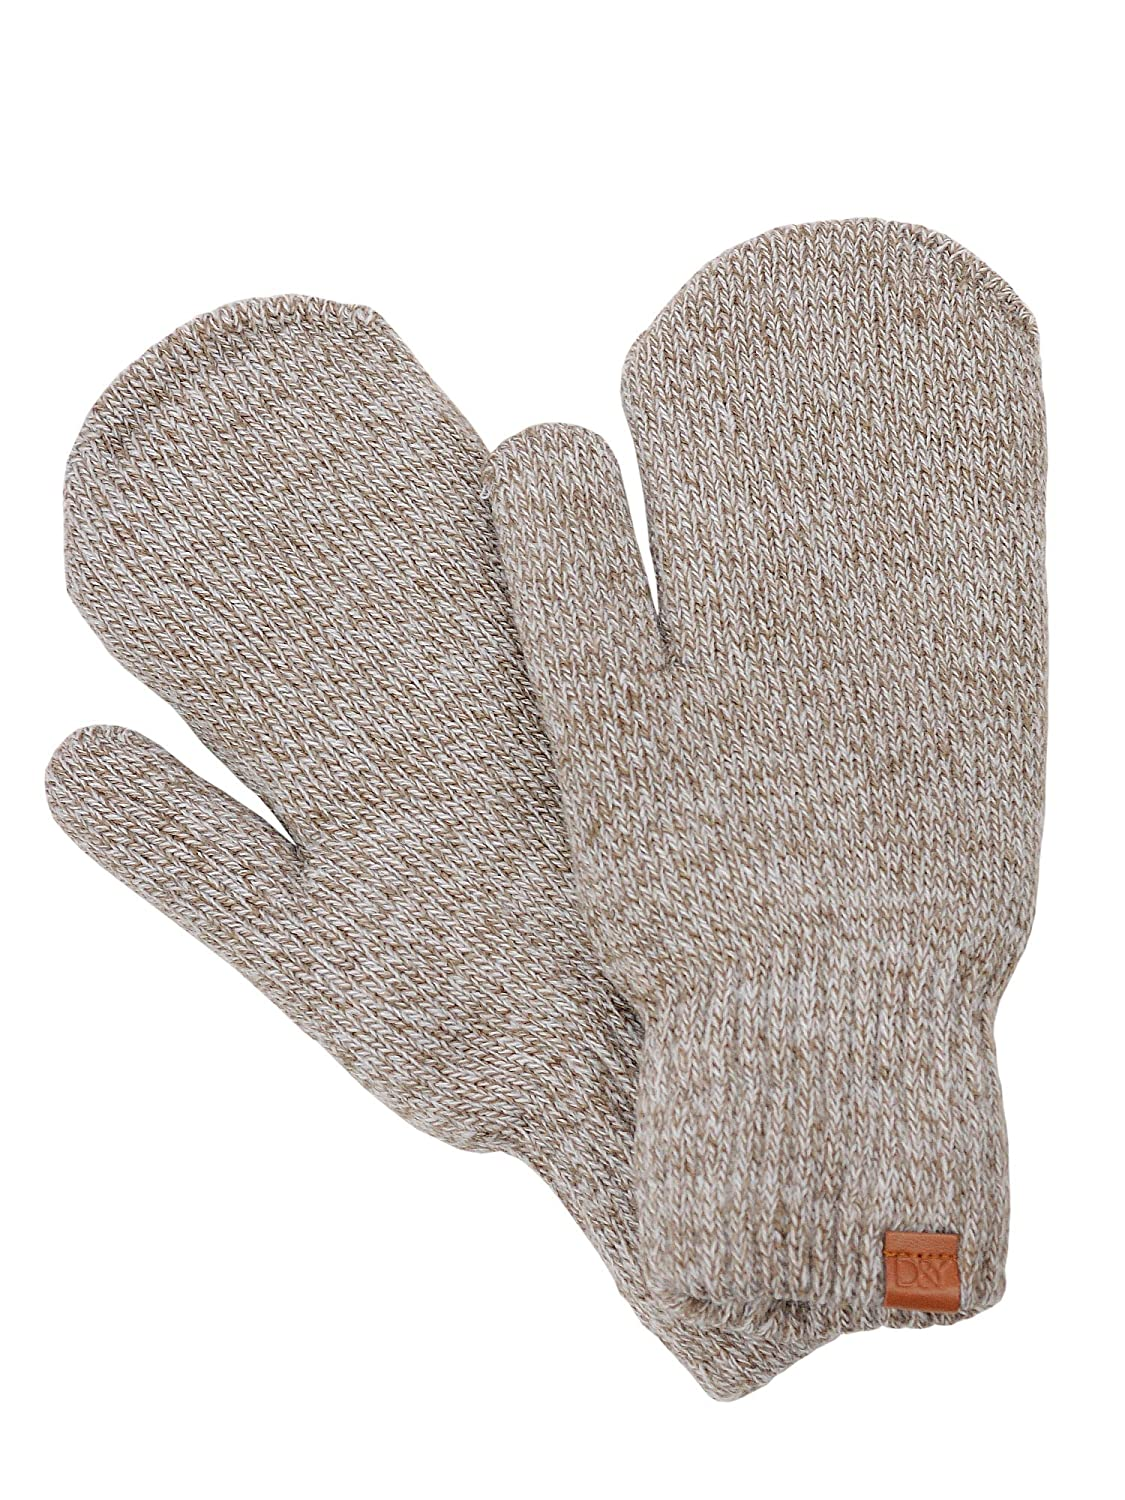 D& Y Women's Soft Cozy and Warm Fuzzy Lining Two Tone Mittens GWMT0104-BK